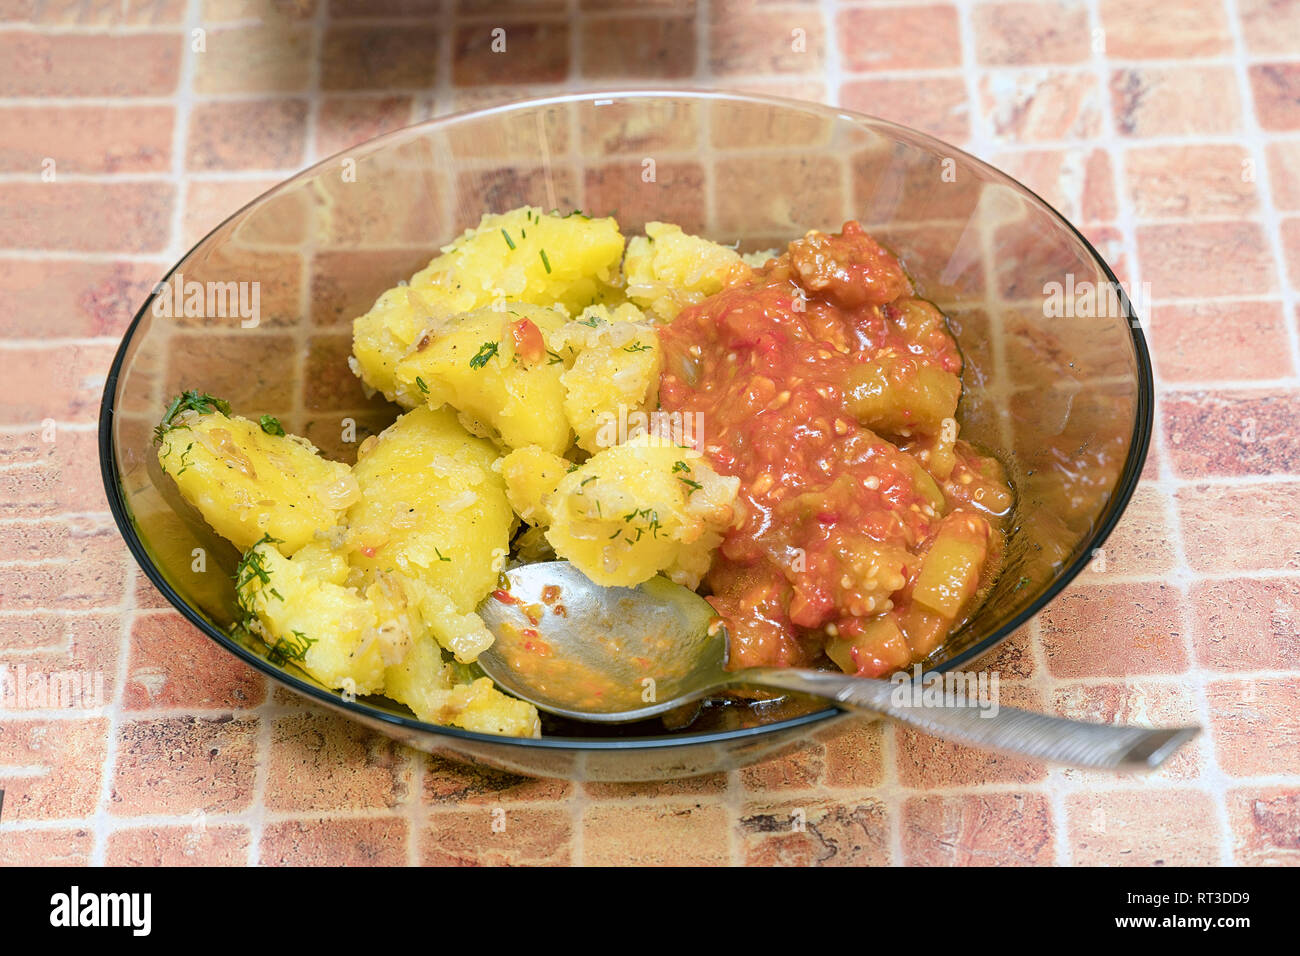 Potatoes with vegetables in a plate with a spoon on table - Stock Image